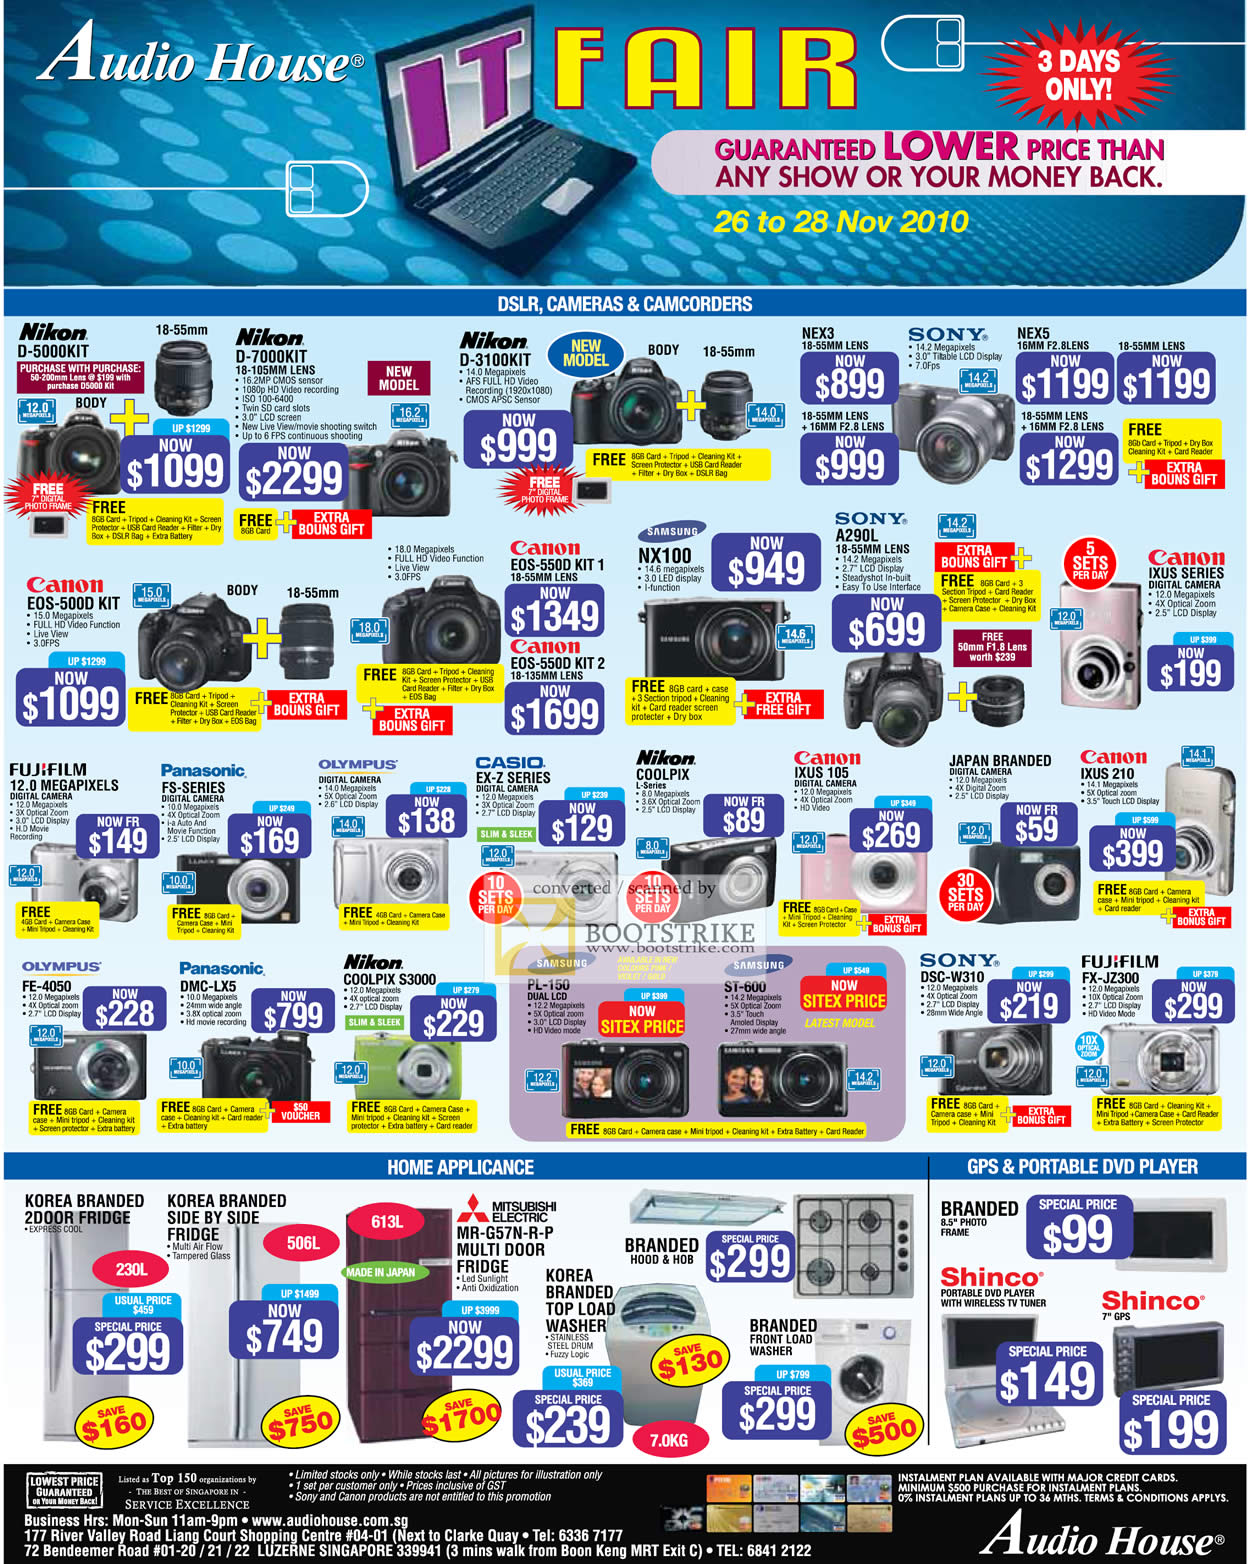 Sitex 2010 price list image brochure of Audio House Digital Cameras DSLRS Nikon Canon Casio Sony Panasonic Shinco GPS Fridge Washer